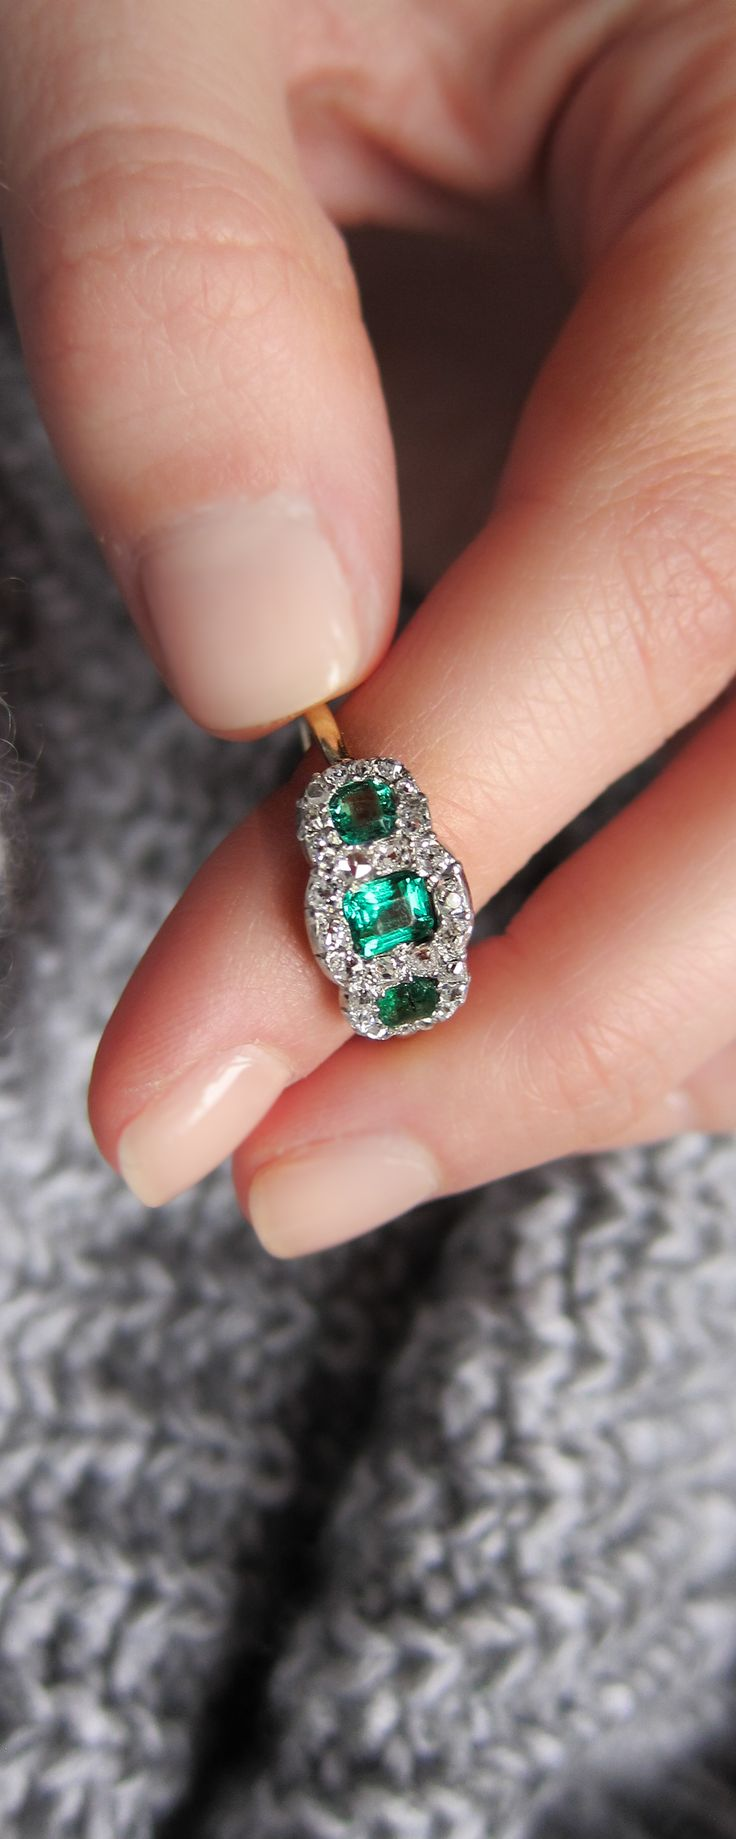 This three stone antique victorian ring is made in PLATINUM on gold with three perfectly green emeralds encircled by diamonds. This ring is classic french vintage, a lovely alternative engagement ring or an everyday piece either way it's a stunner.